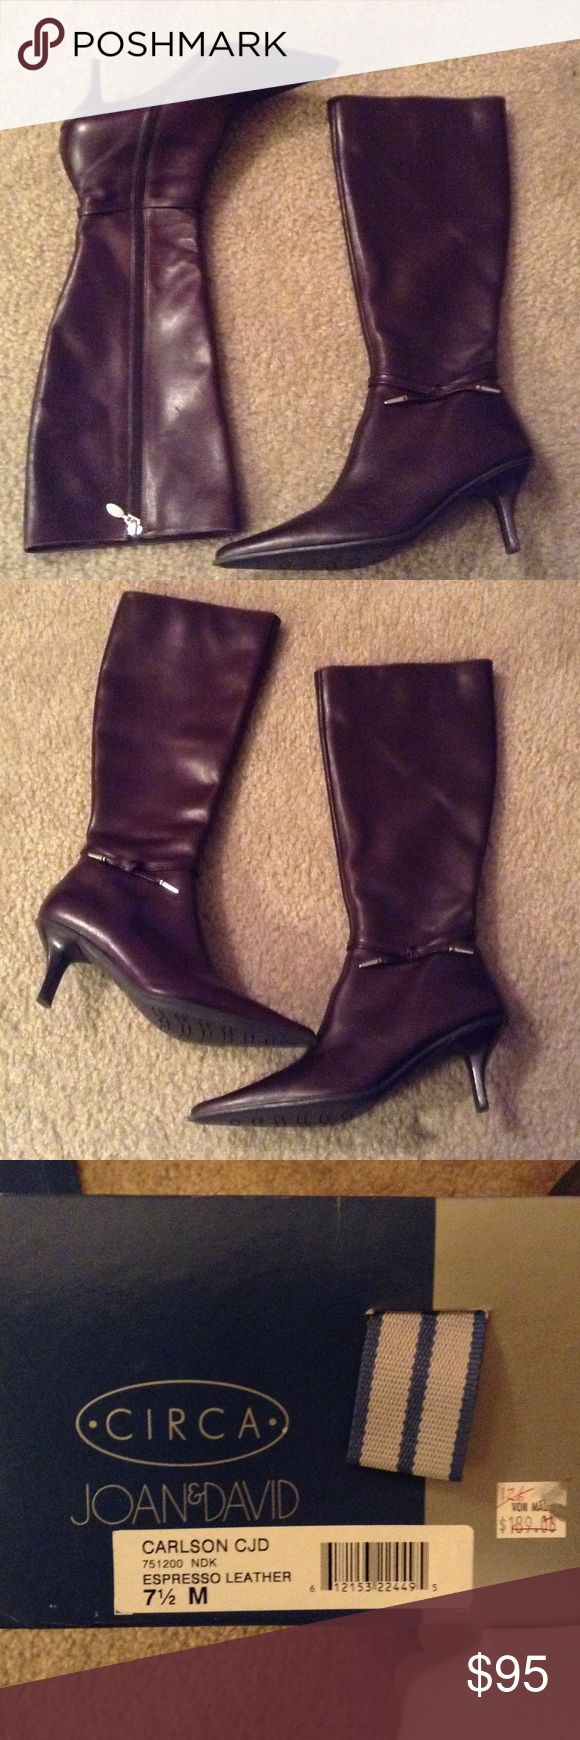 Circa Joan&David Espresso Leather burgundy boots. Espresso Leather boots, used in good condition.  Burgundy in color.  Size 7.5 Joan & David Shoes Heeled Boots